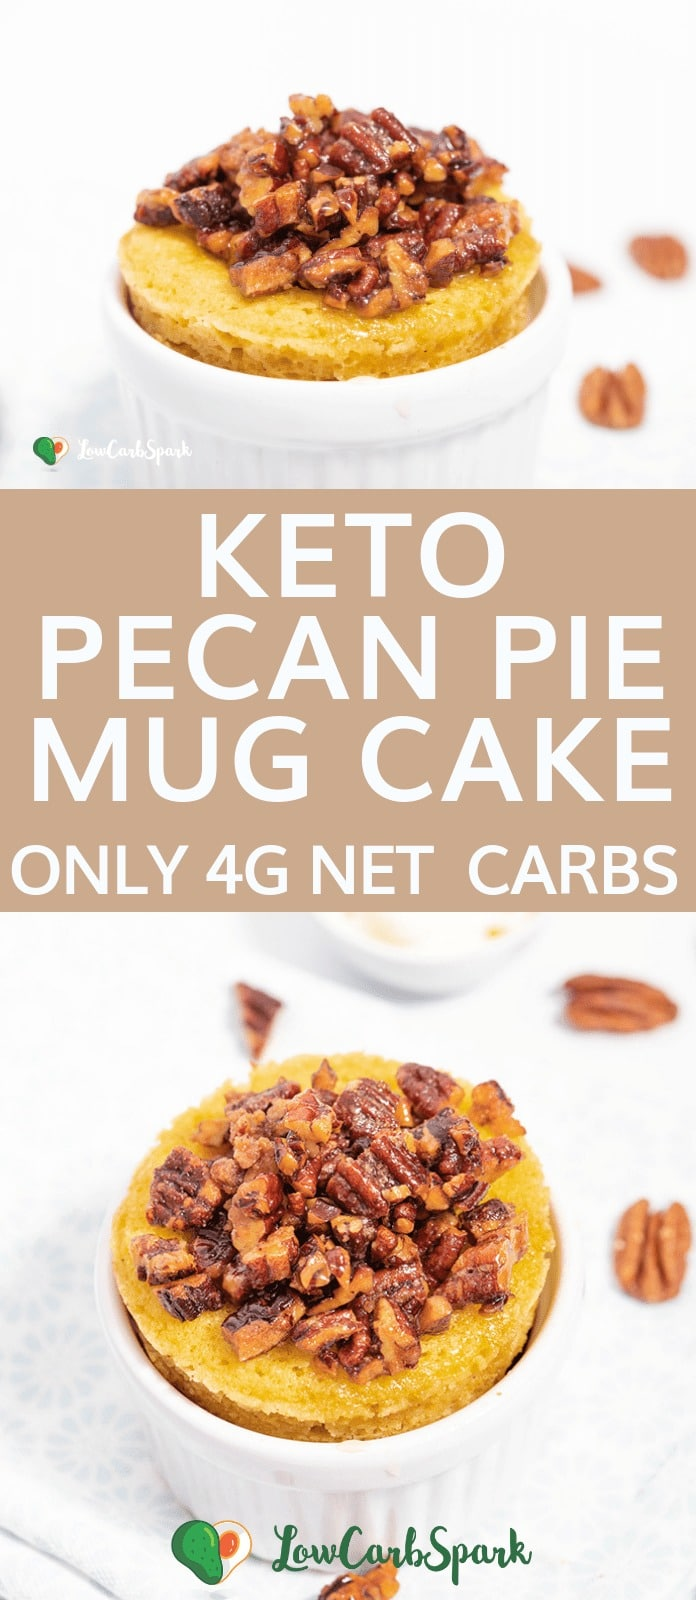 This keto Pecan Pie Mug Cake is a moist, delicious treat that's extremely easy to make and low in carbs. It's ready in 90 seconds. Enjoy a fantastic keto dessert that's full of flavor and has only 4g net carbs. Top the mug cake with this fabulous sugar-free caramelized pecans.